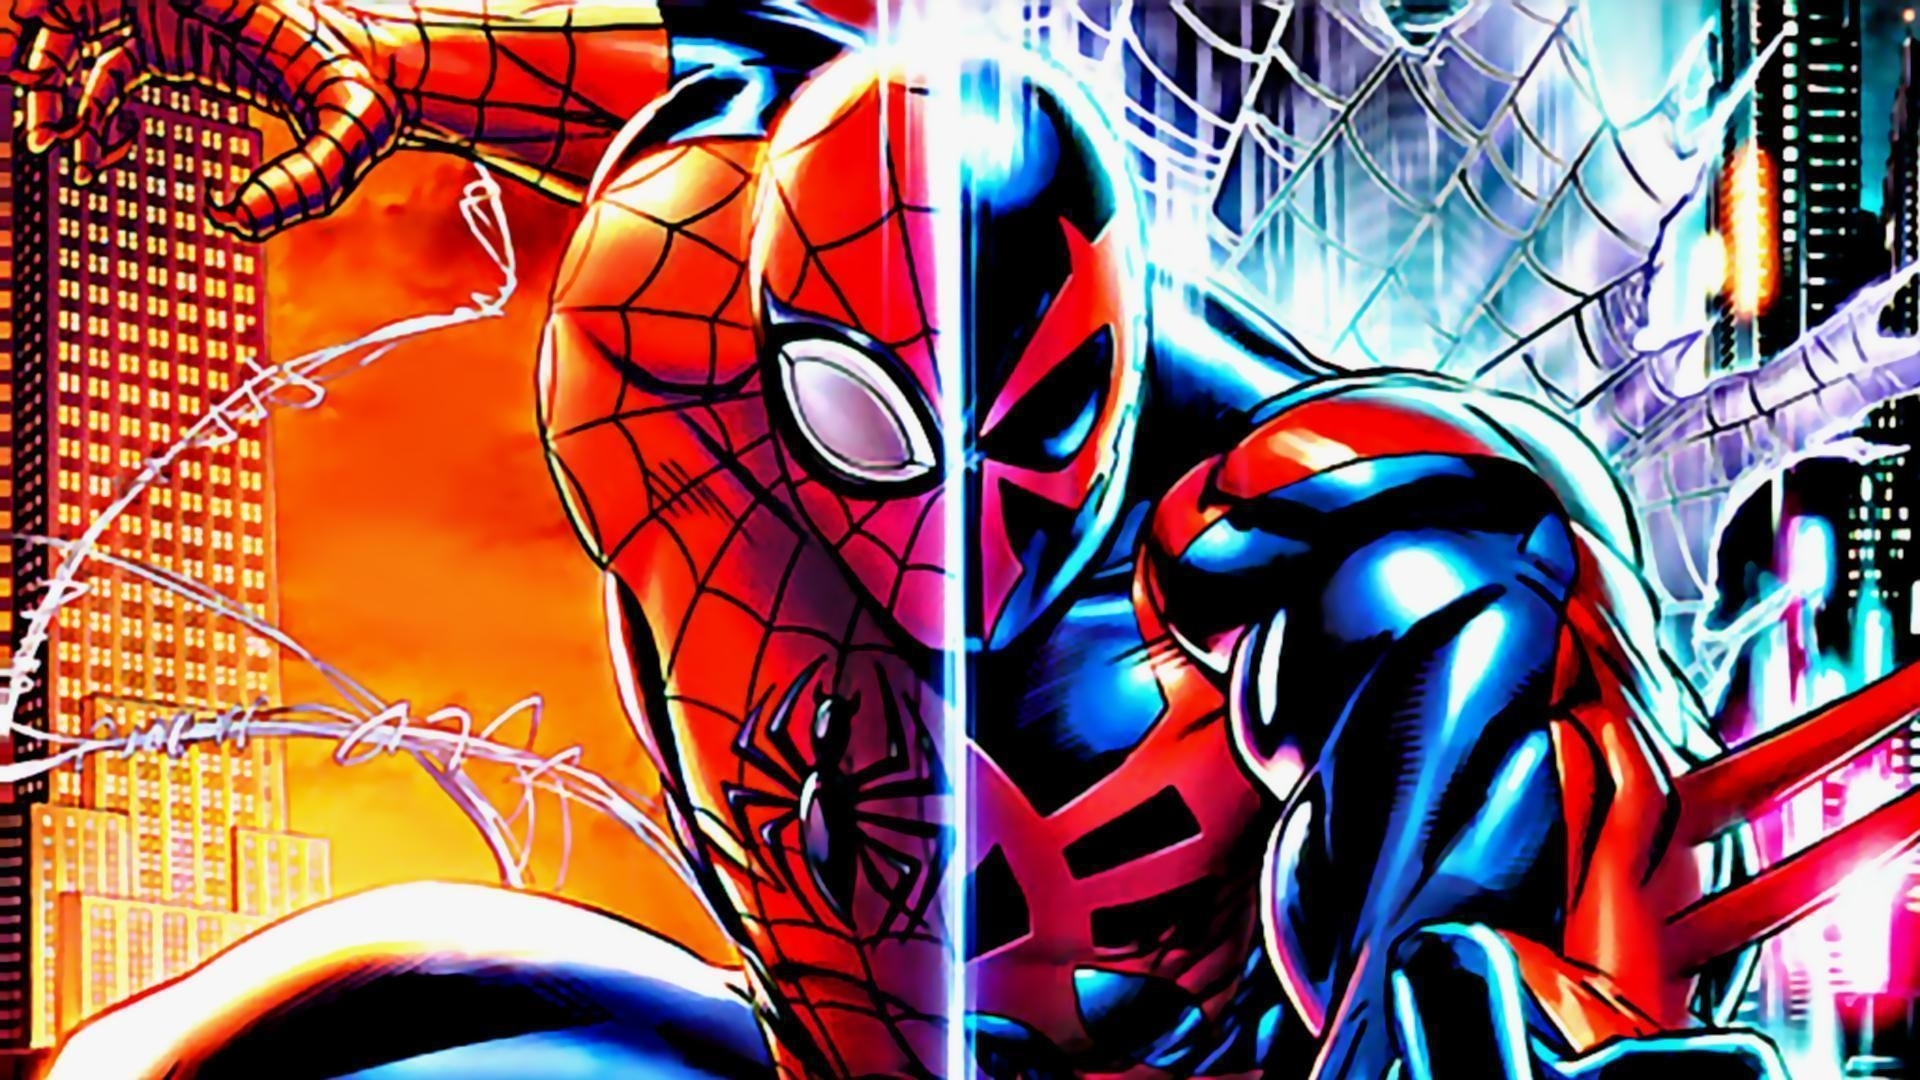 spider-man 2099 wallpapers - wallpaper cave